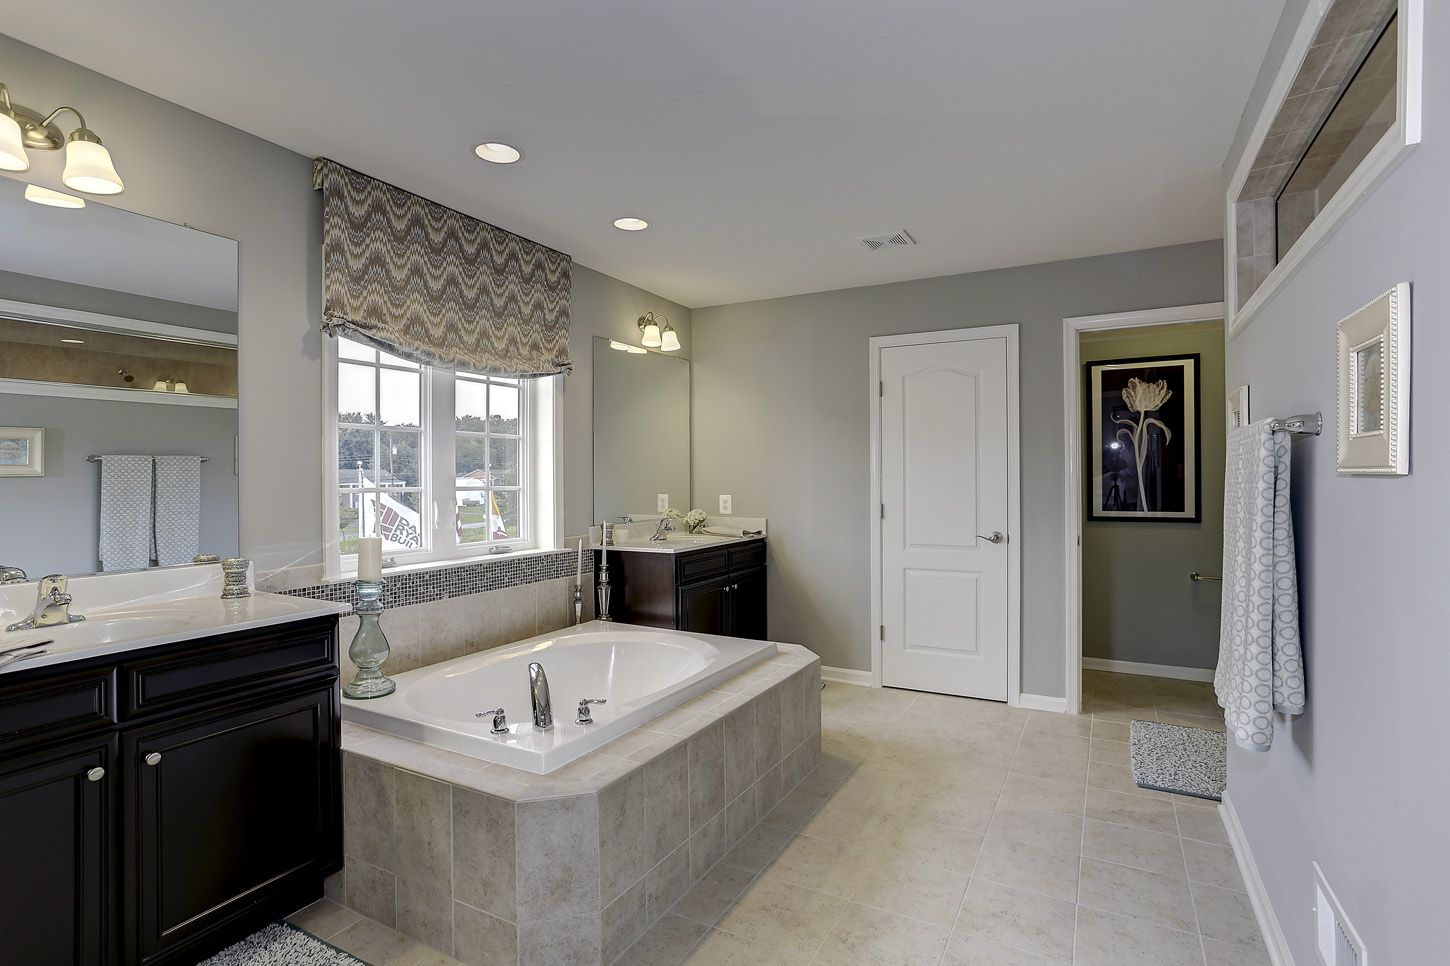 Beautiful owner's bathroom with Jack and Jill couple style bathroom. The Rosecliff II model at Maple Valley Estates by Dan Ryan Builders. Home Style Ideas